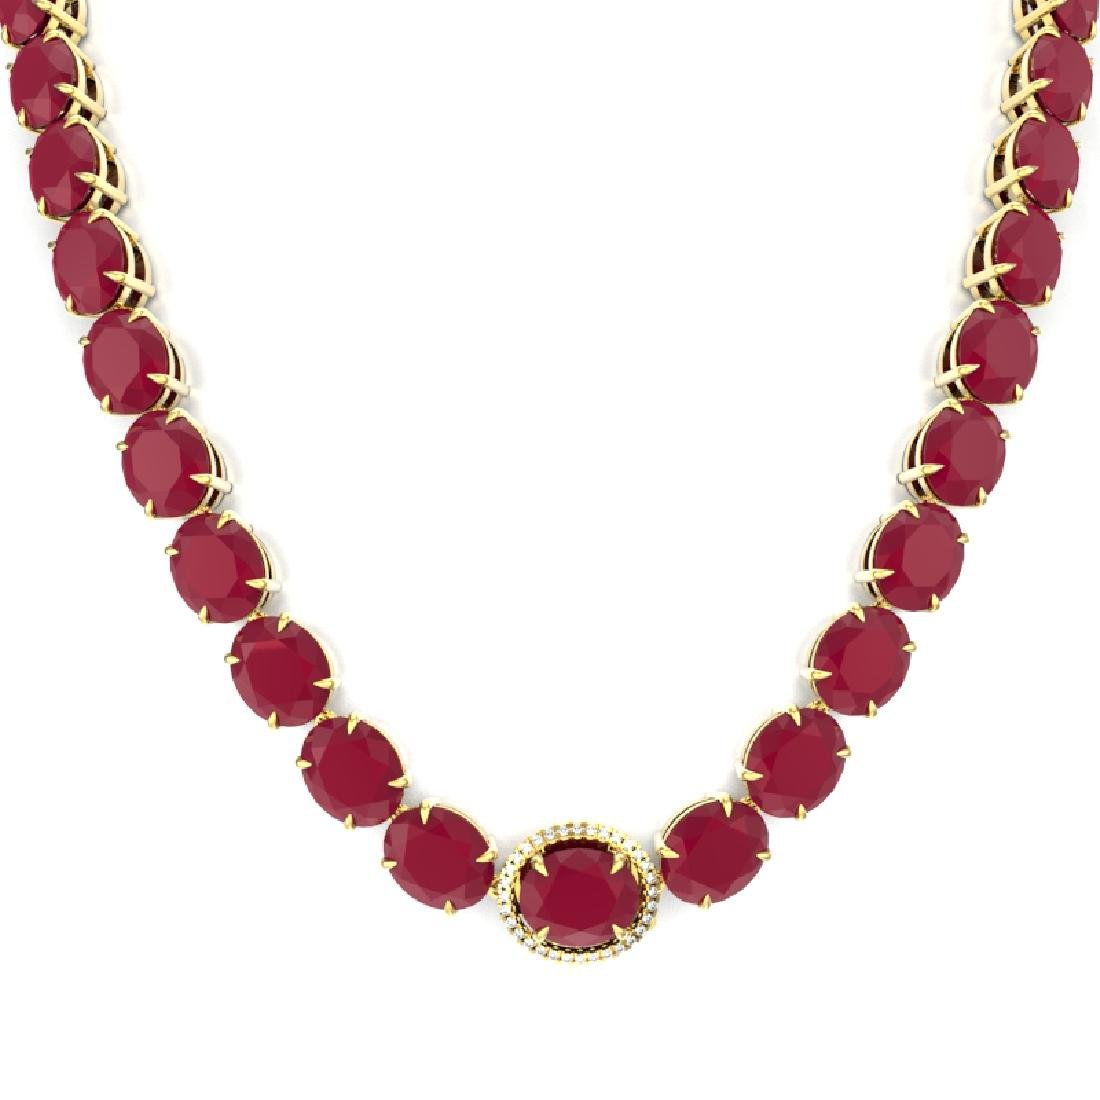 170 CTW Ruby & VS/SI Diamond Necklace 14K Yellow Gold - 2